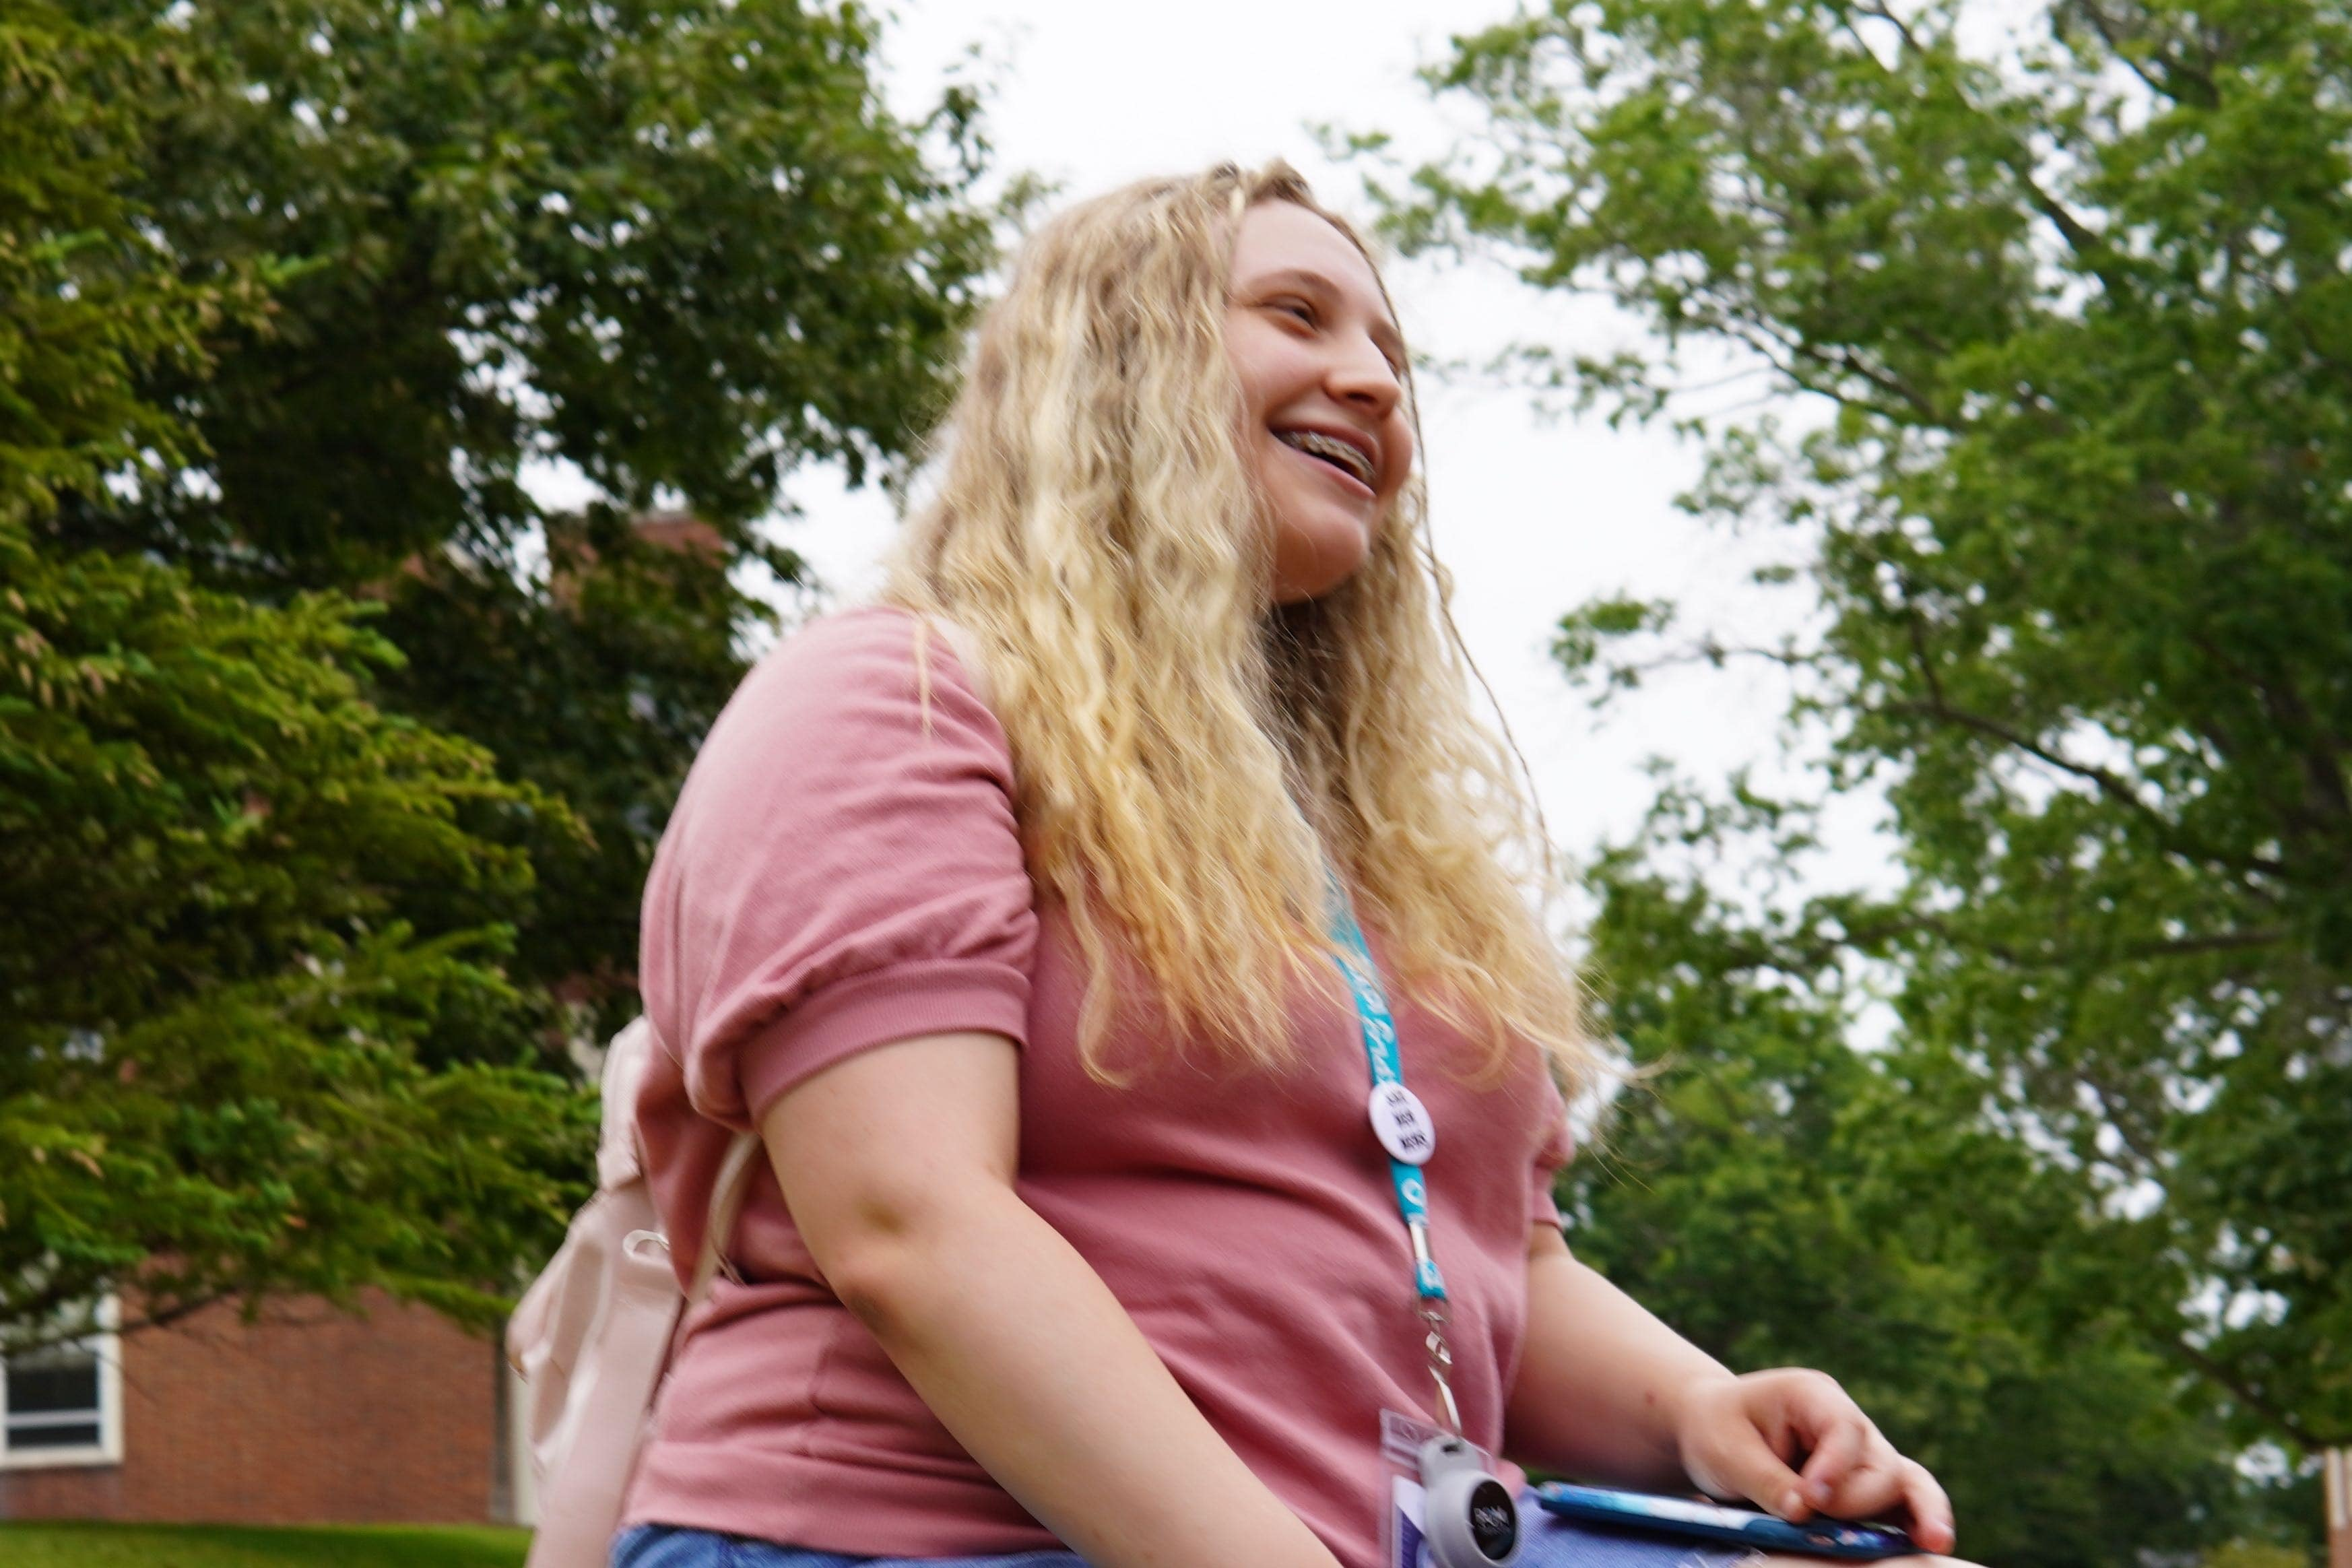 Meet Beth: Excited for The World Reopening